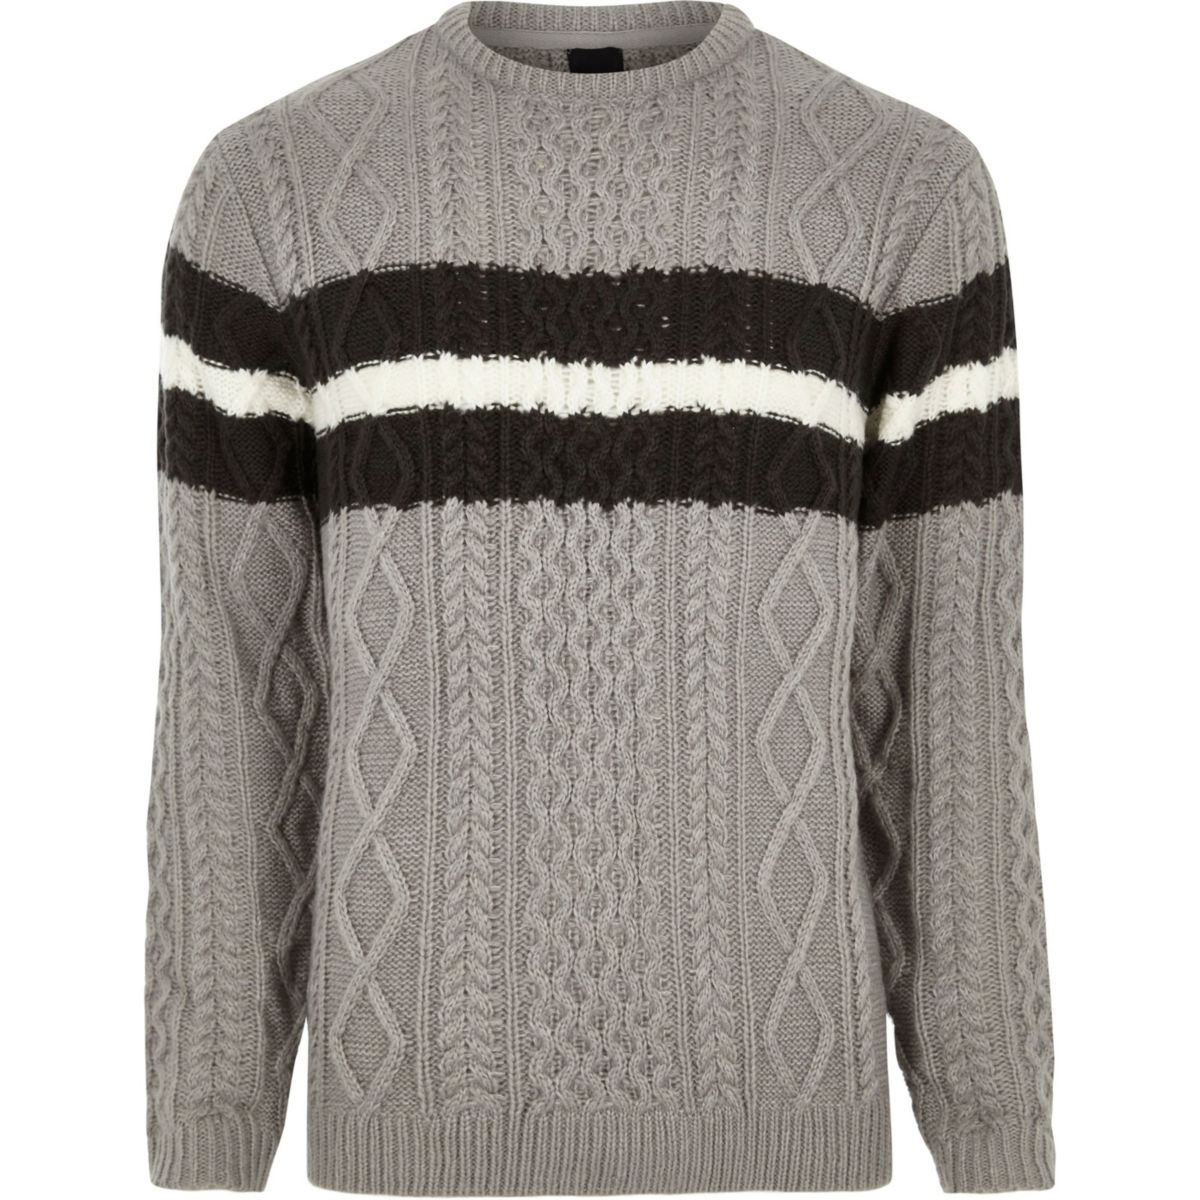 Grey cable knit block stripe knit jumper